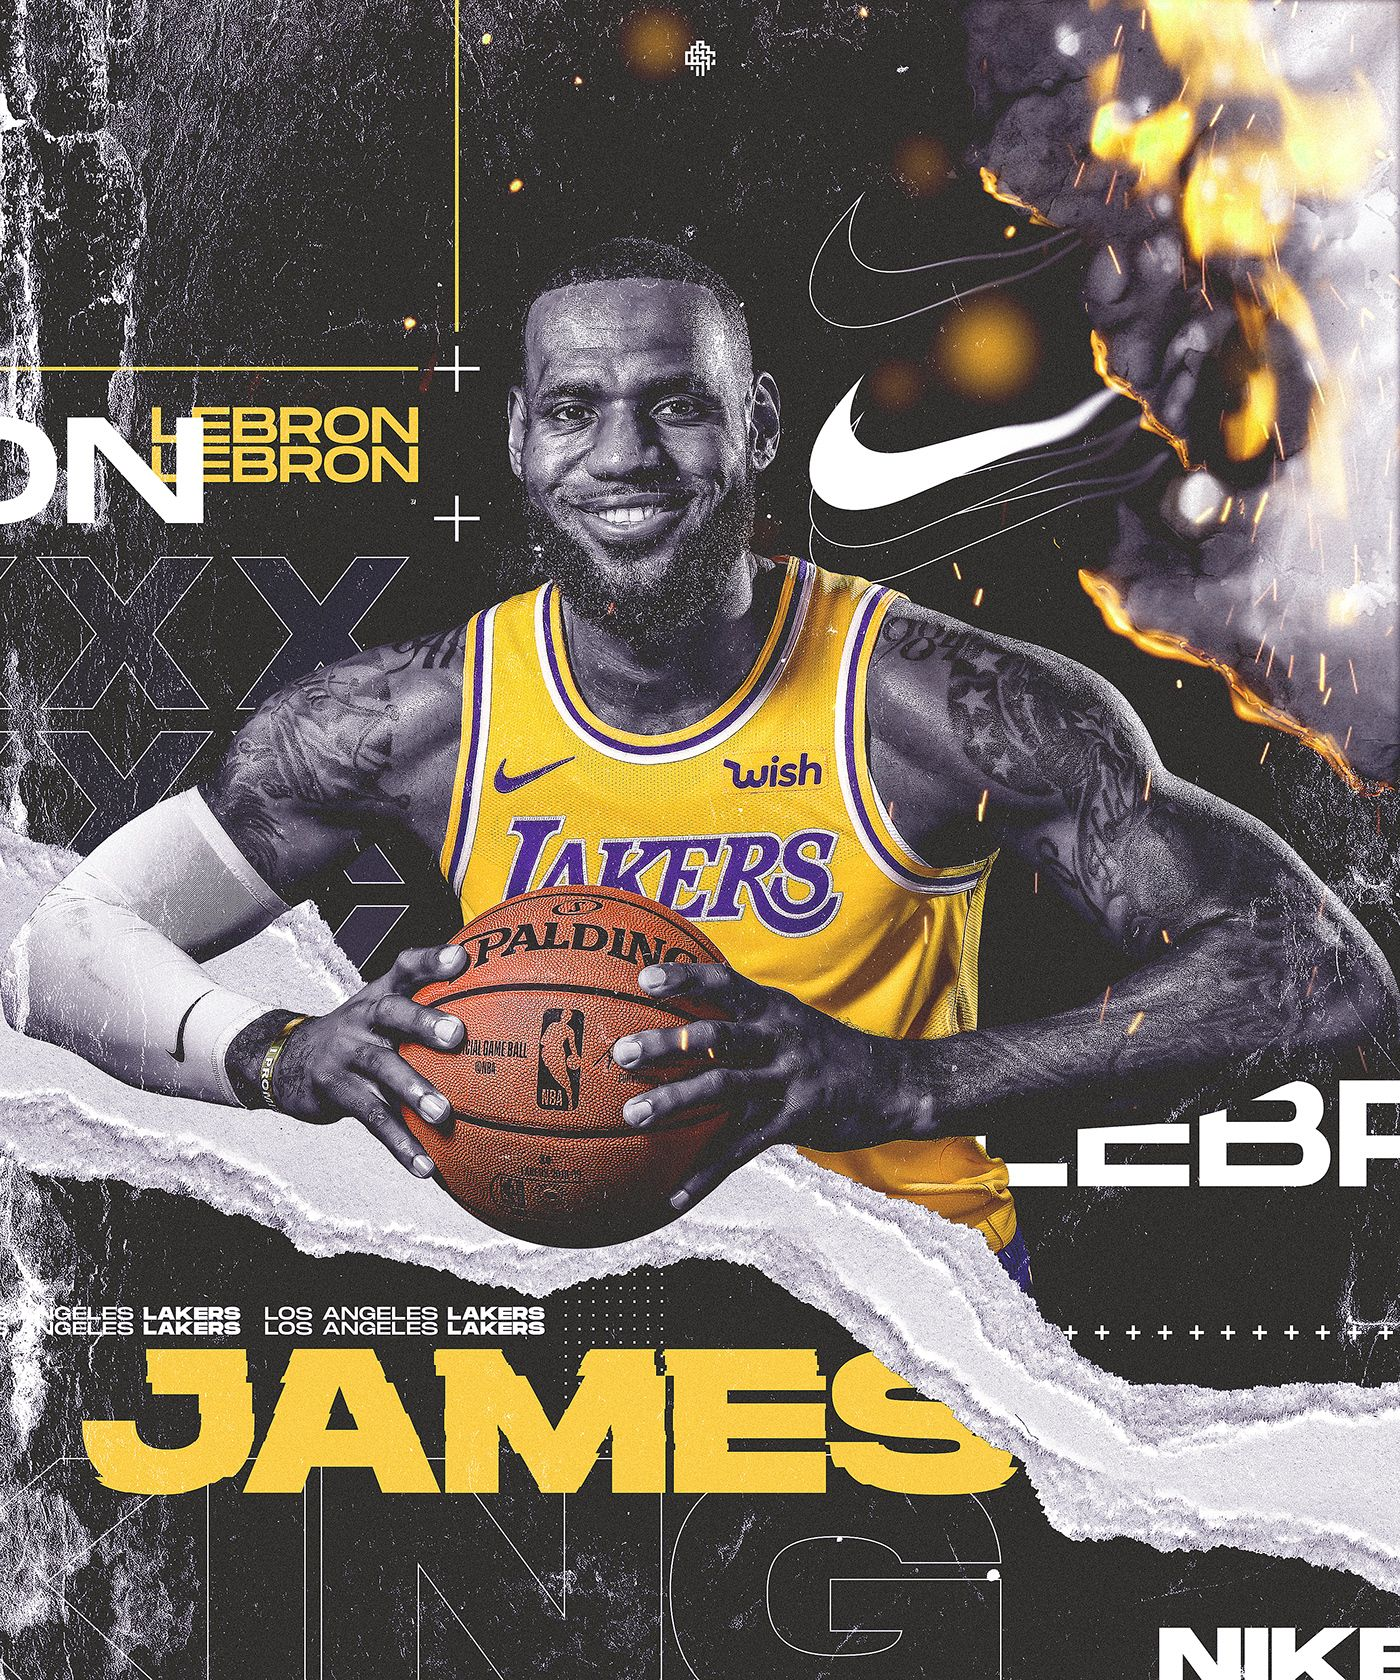 Lakers Lebron James Nike Personal Project On Behance Lebron James Finals Sports Design Inspiration Sports Graphic Design